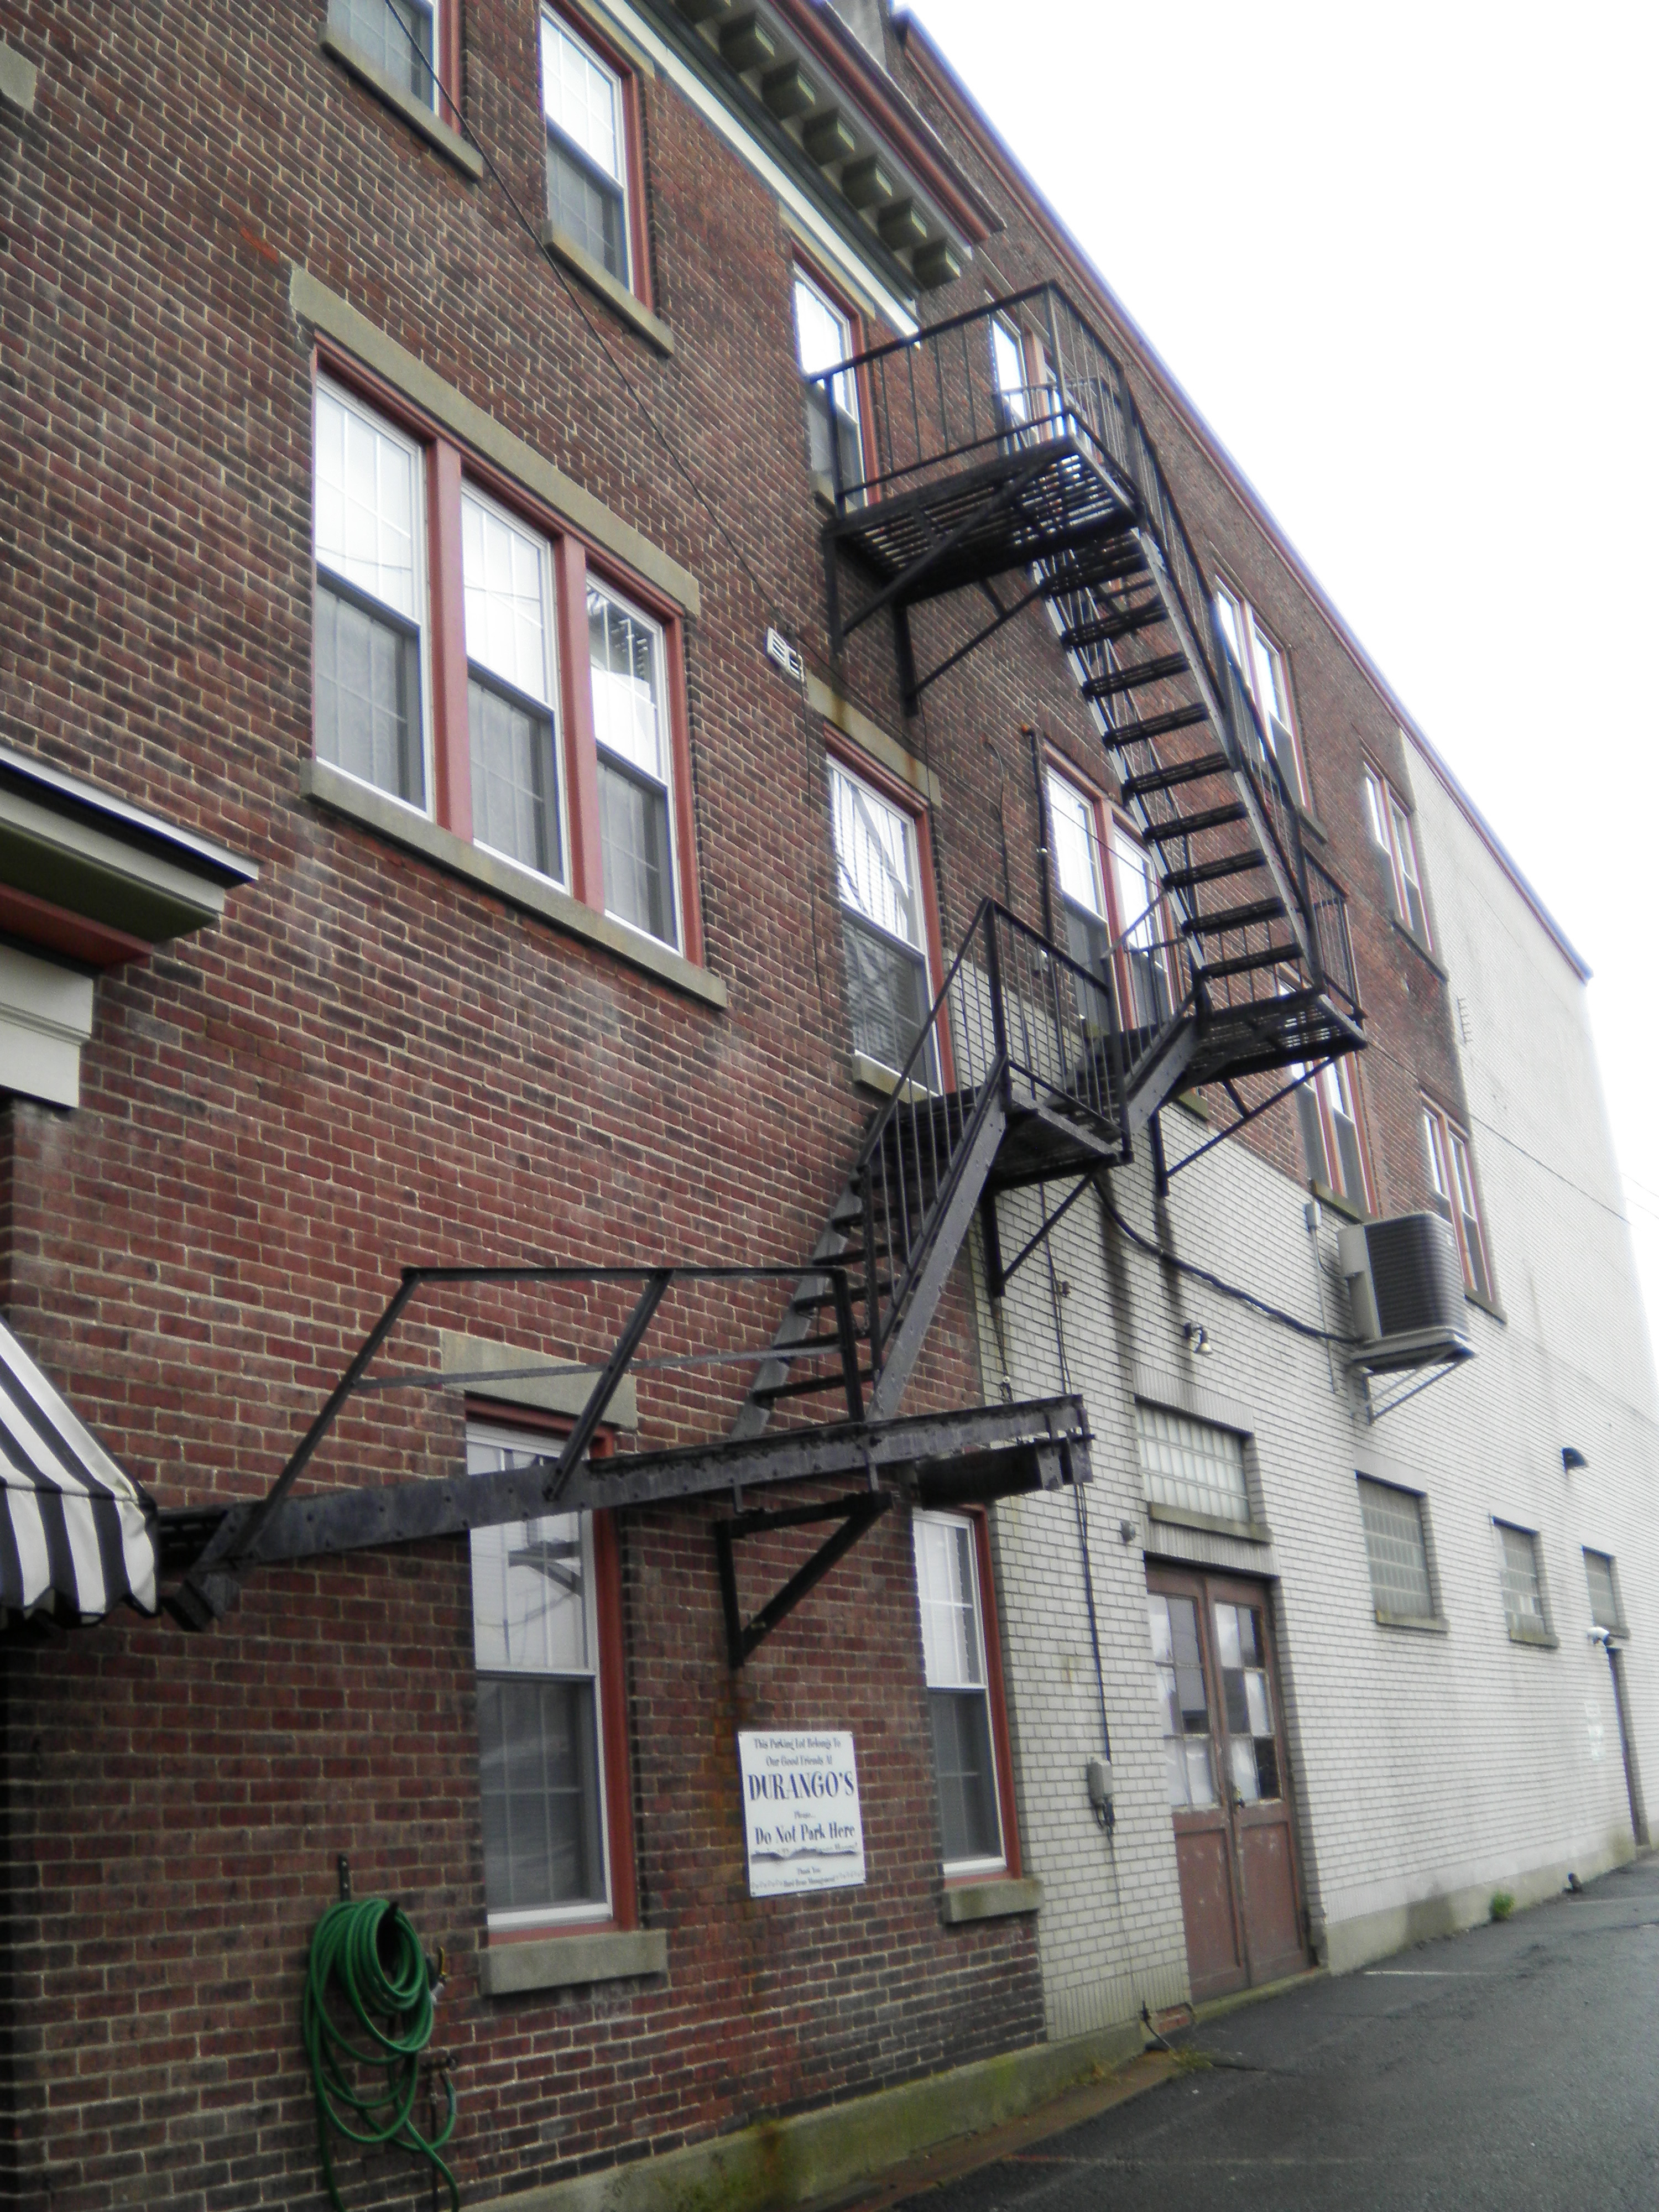 Fire escape on the building where the Rhoads Opera House was